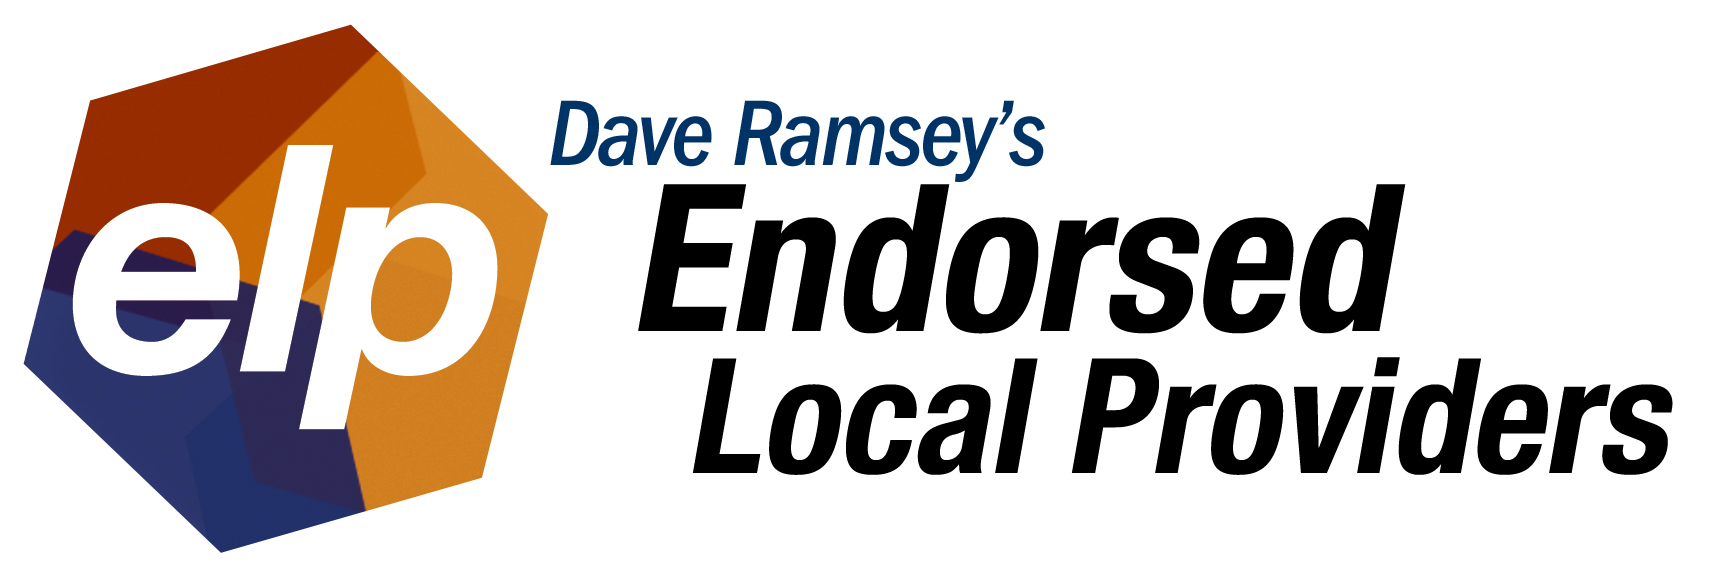 Dave Ramsey's Endorsed Local Providers